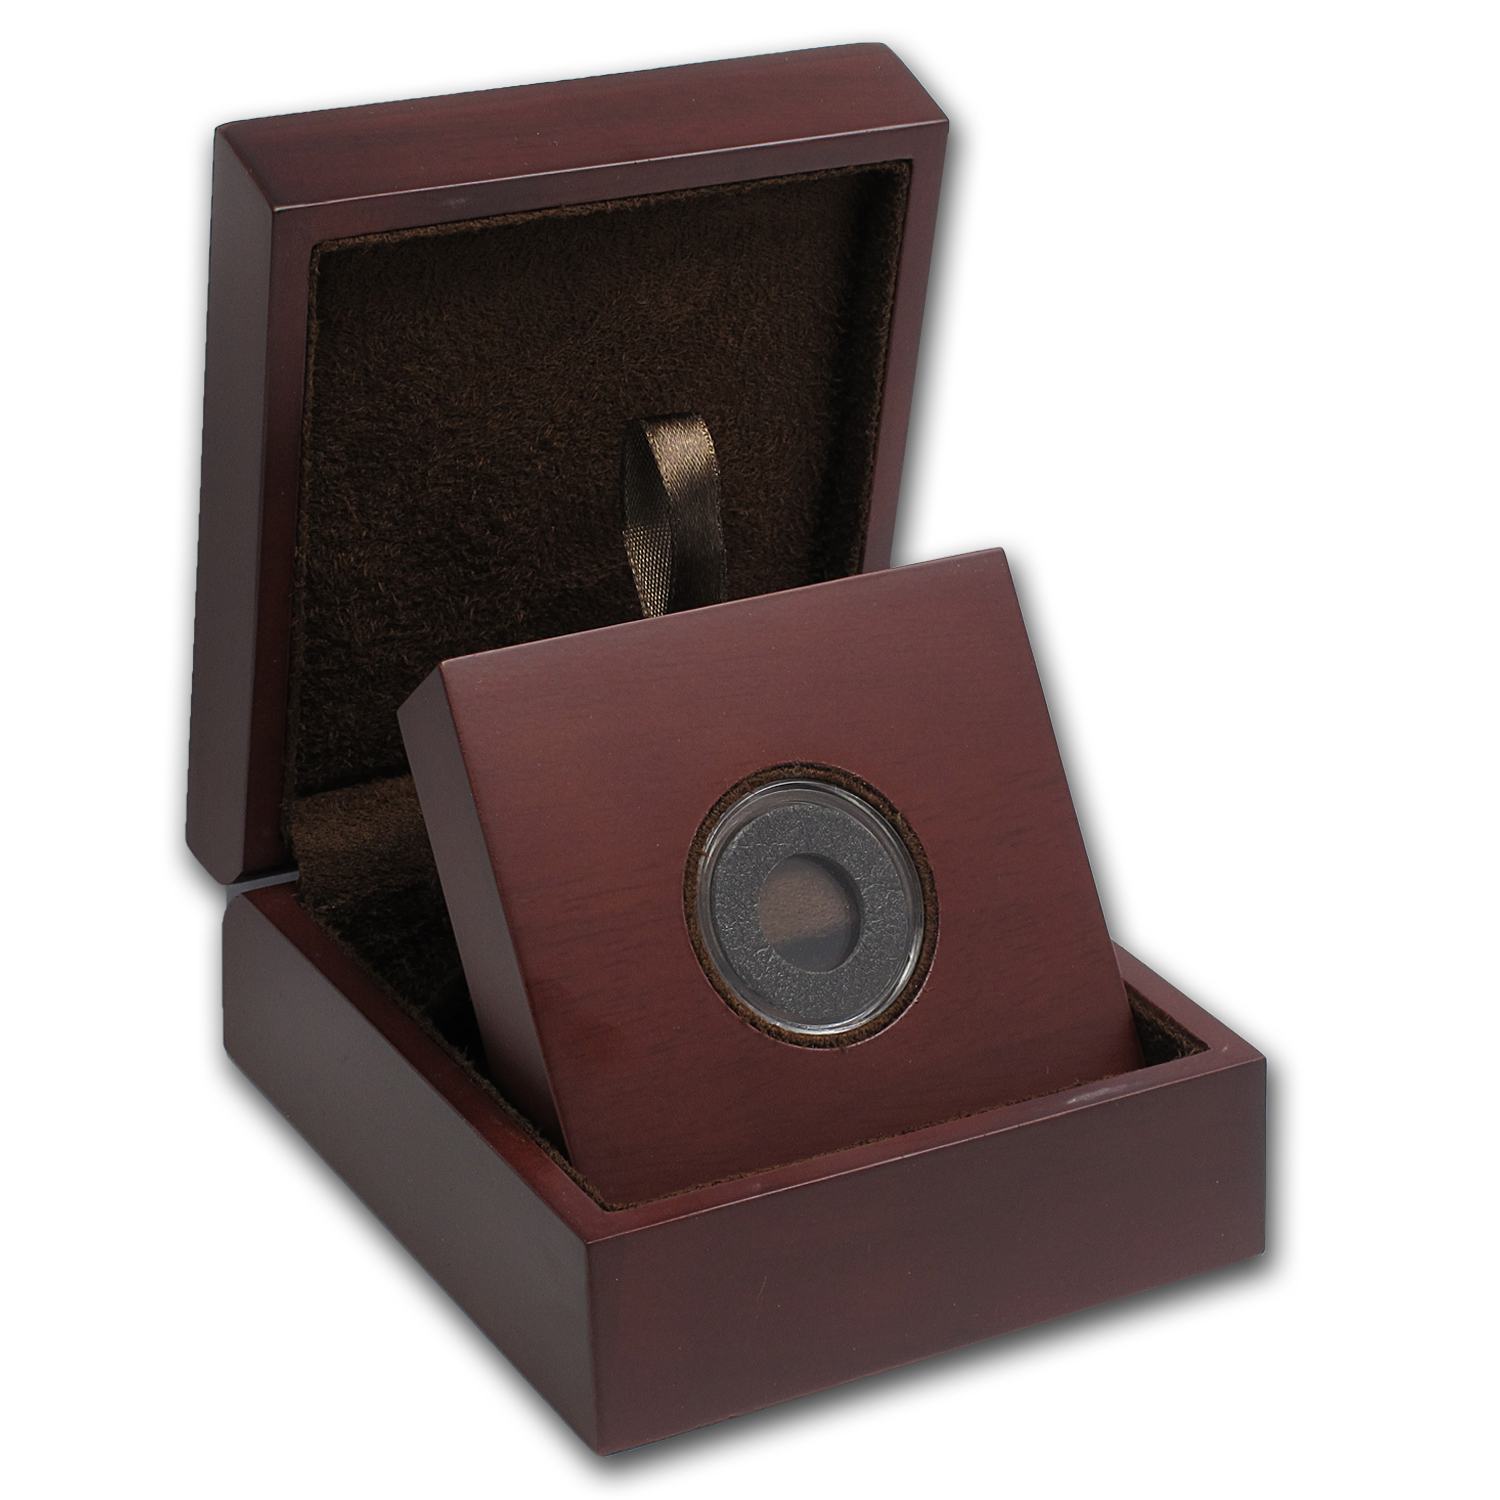 APMEX Wood Gift Box - Includes 14 mm Air-Tite Holder with Gasket